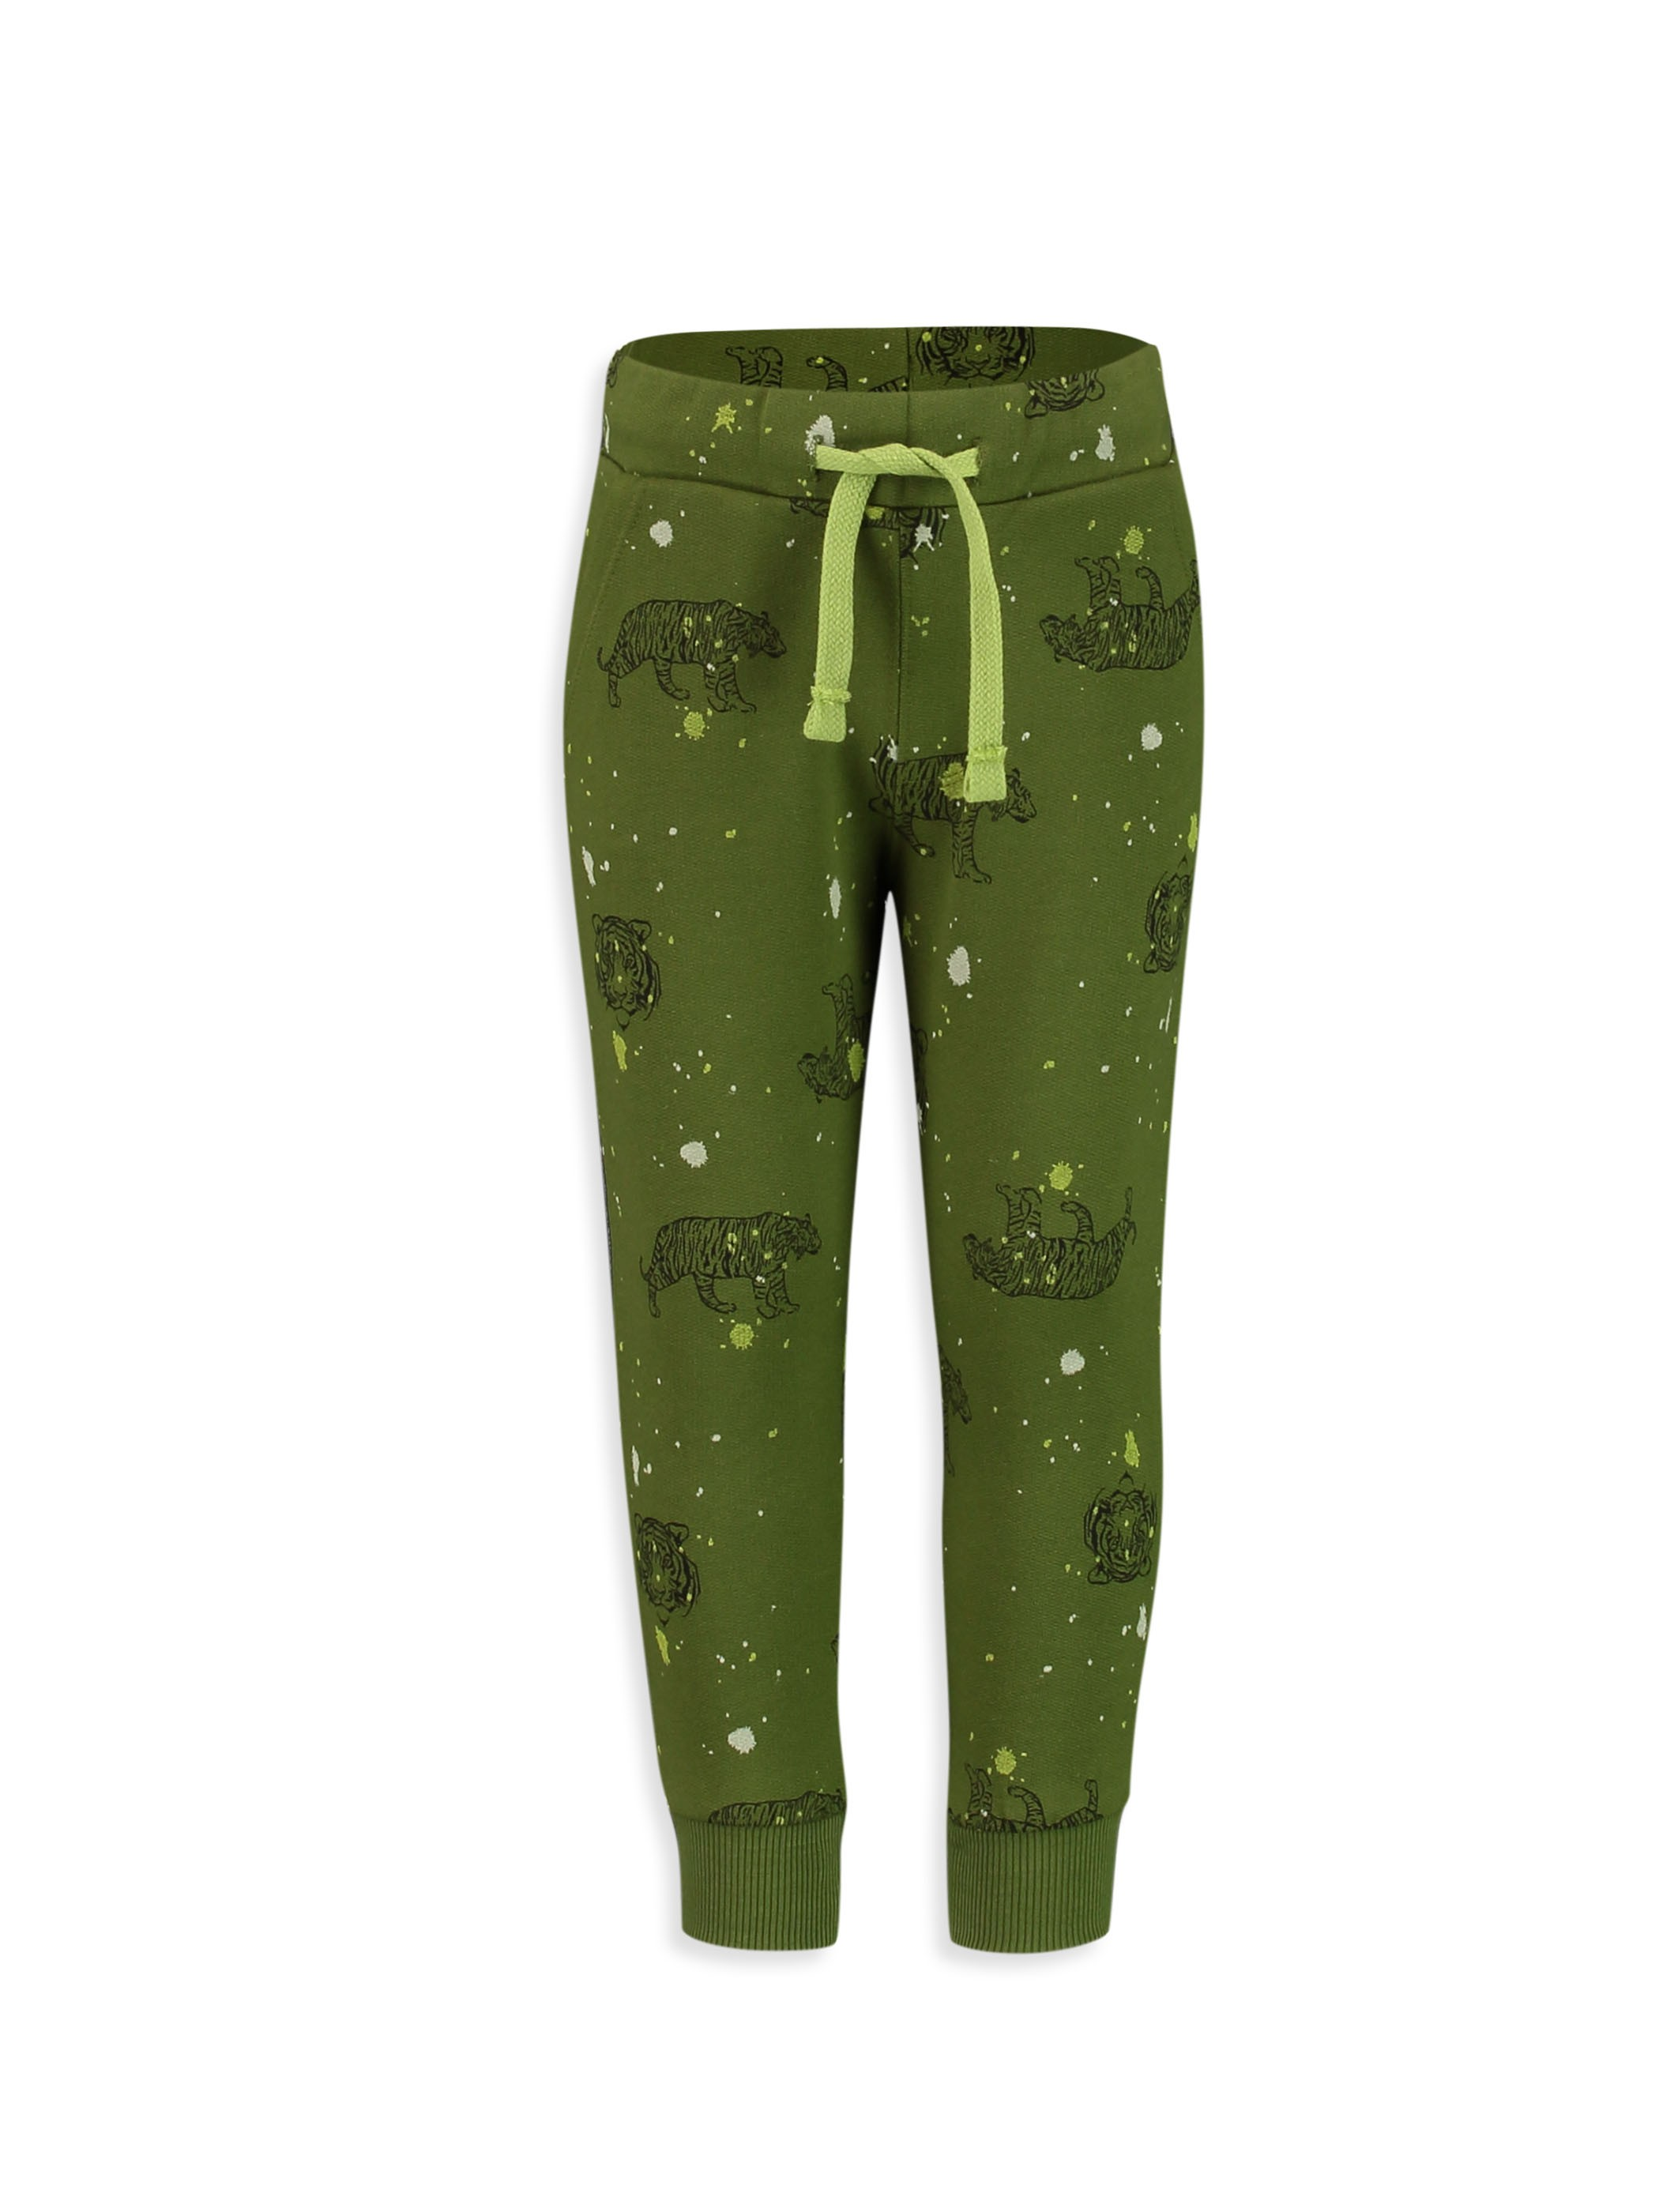 GREEN - Elastic Waist Boy Jogger Trousers - 8S2800Z4